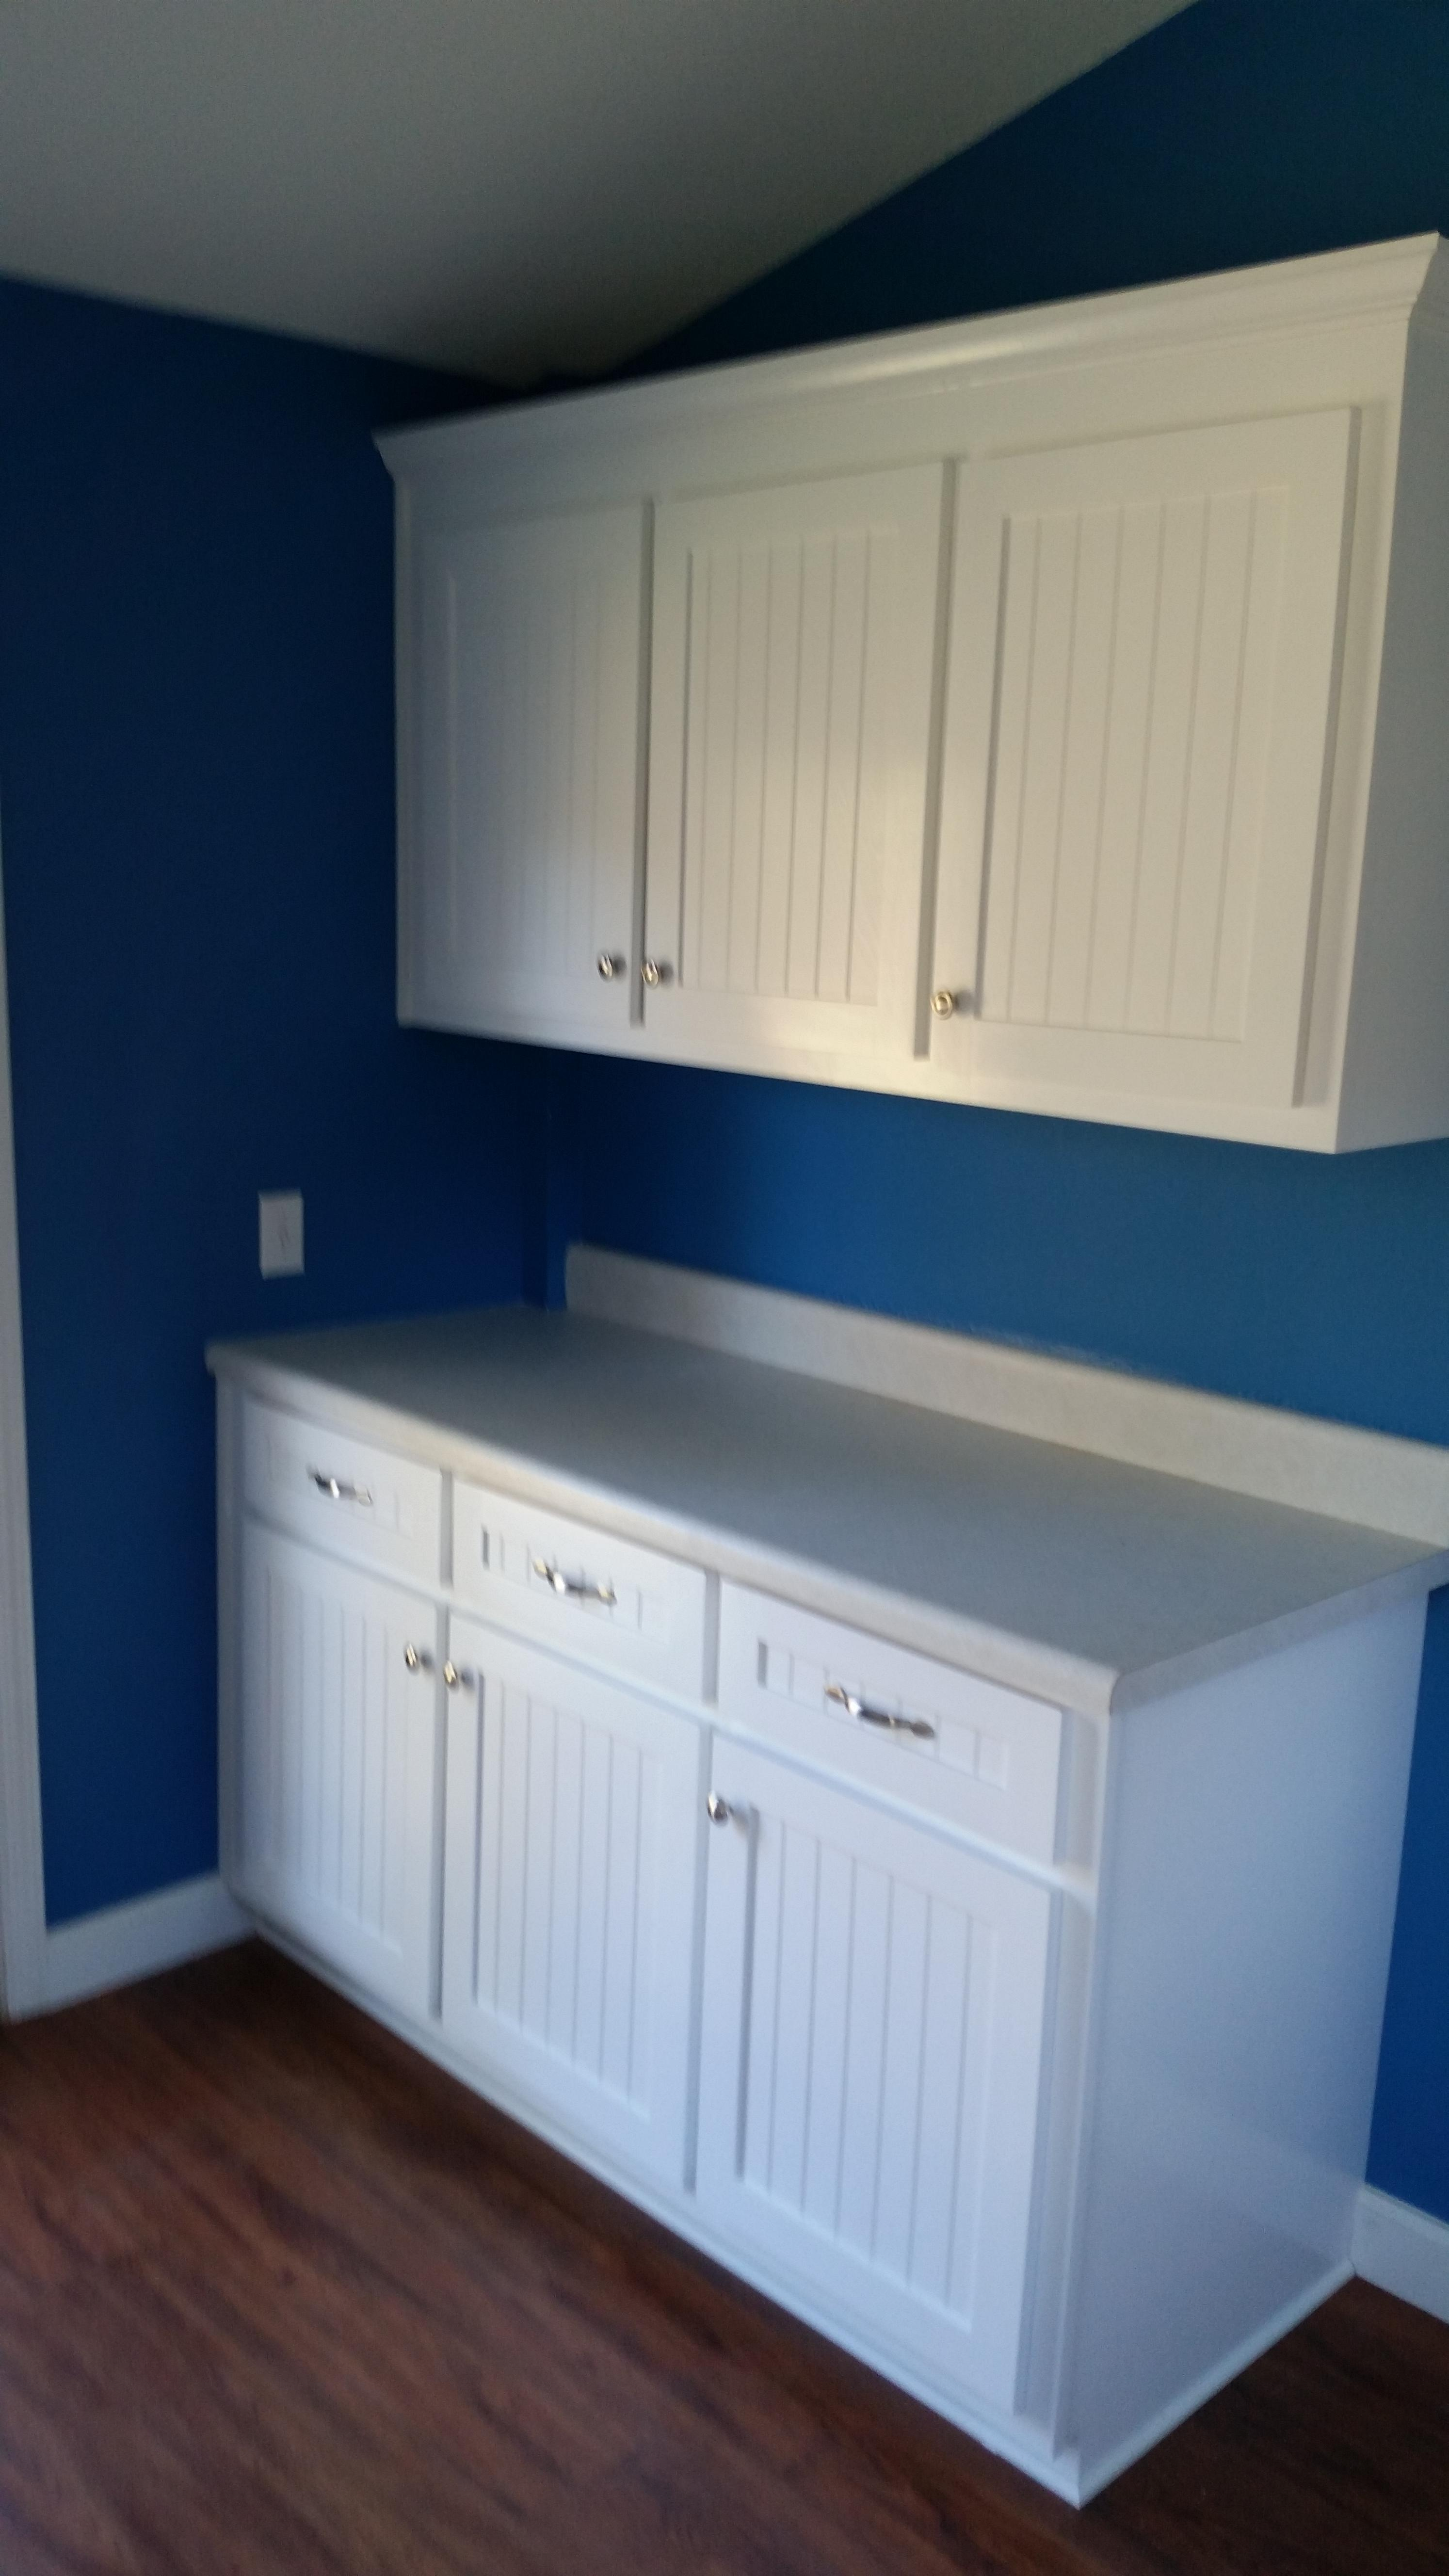 King Cabinets